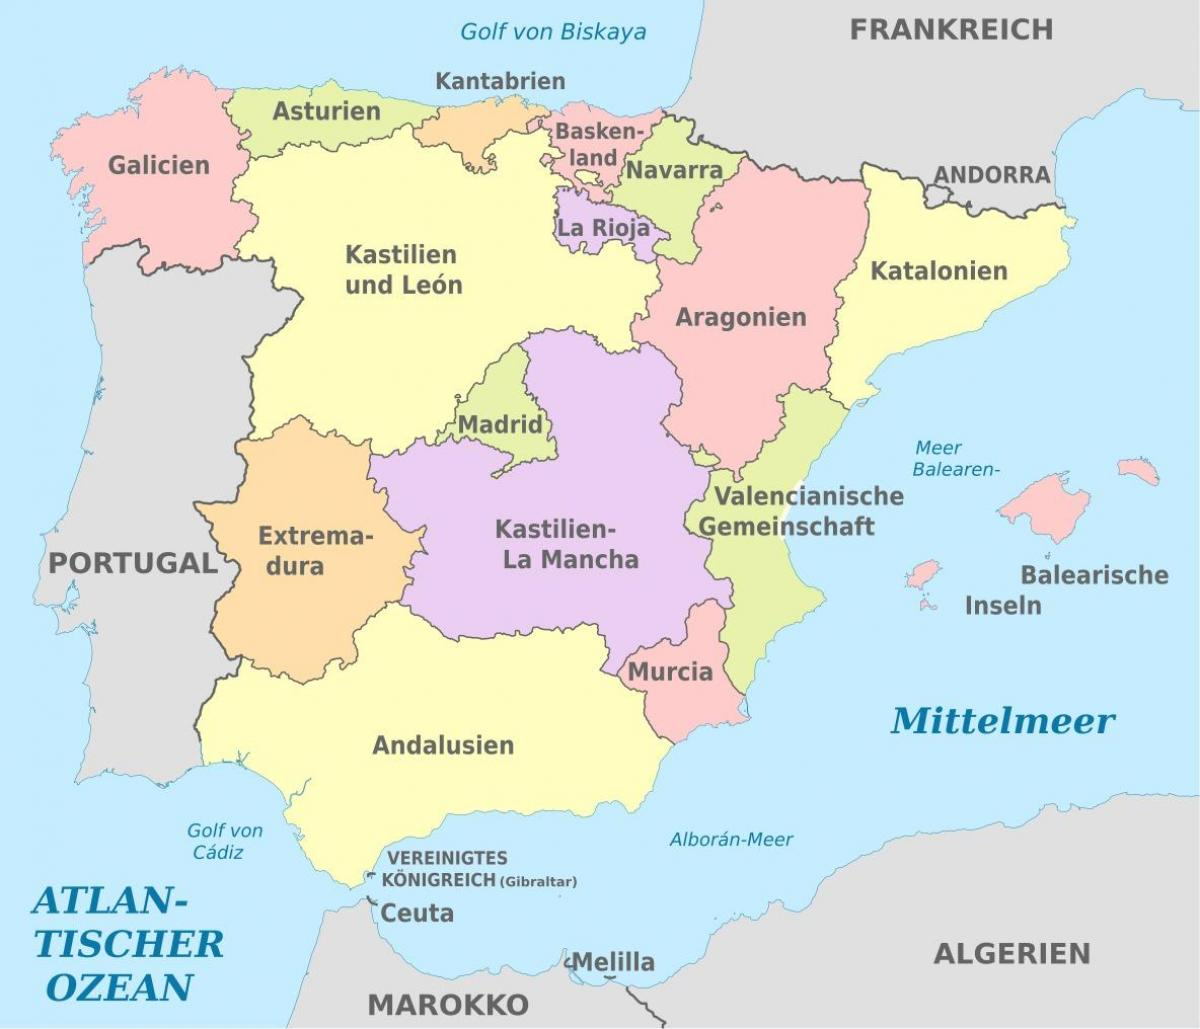 Map Of Spain Labeled.Labeled Map Of Spain Map Of Spain Labeled Southern Europe Europe